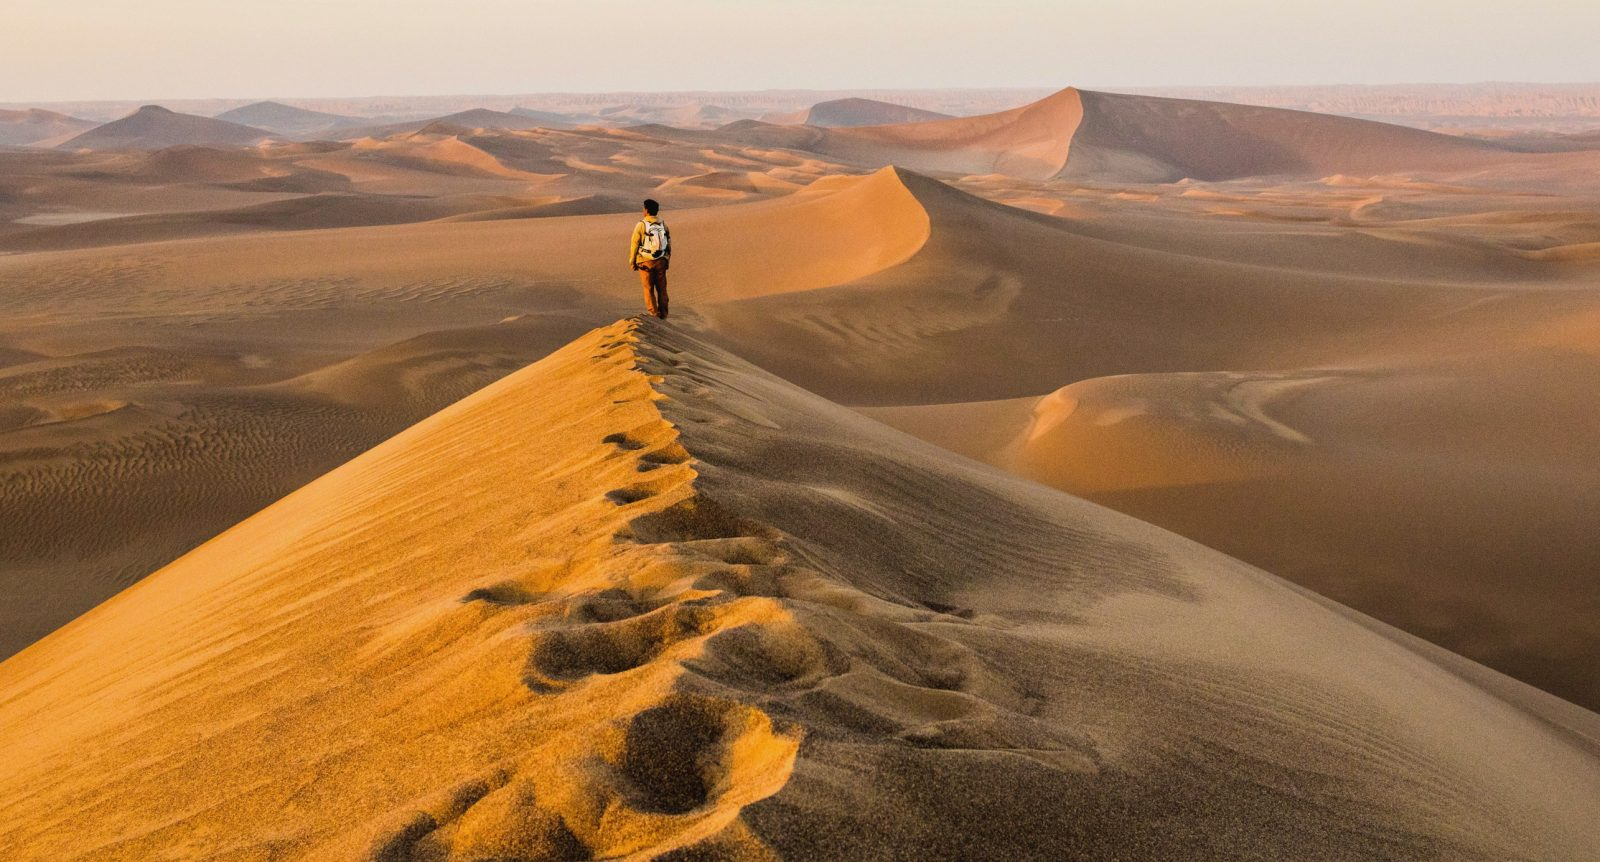 Trekking in the Lut desert Iran